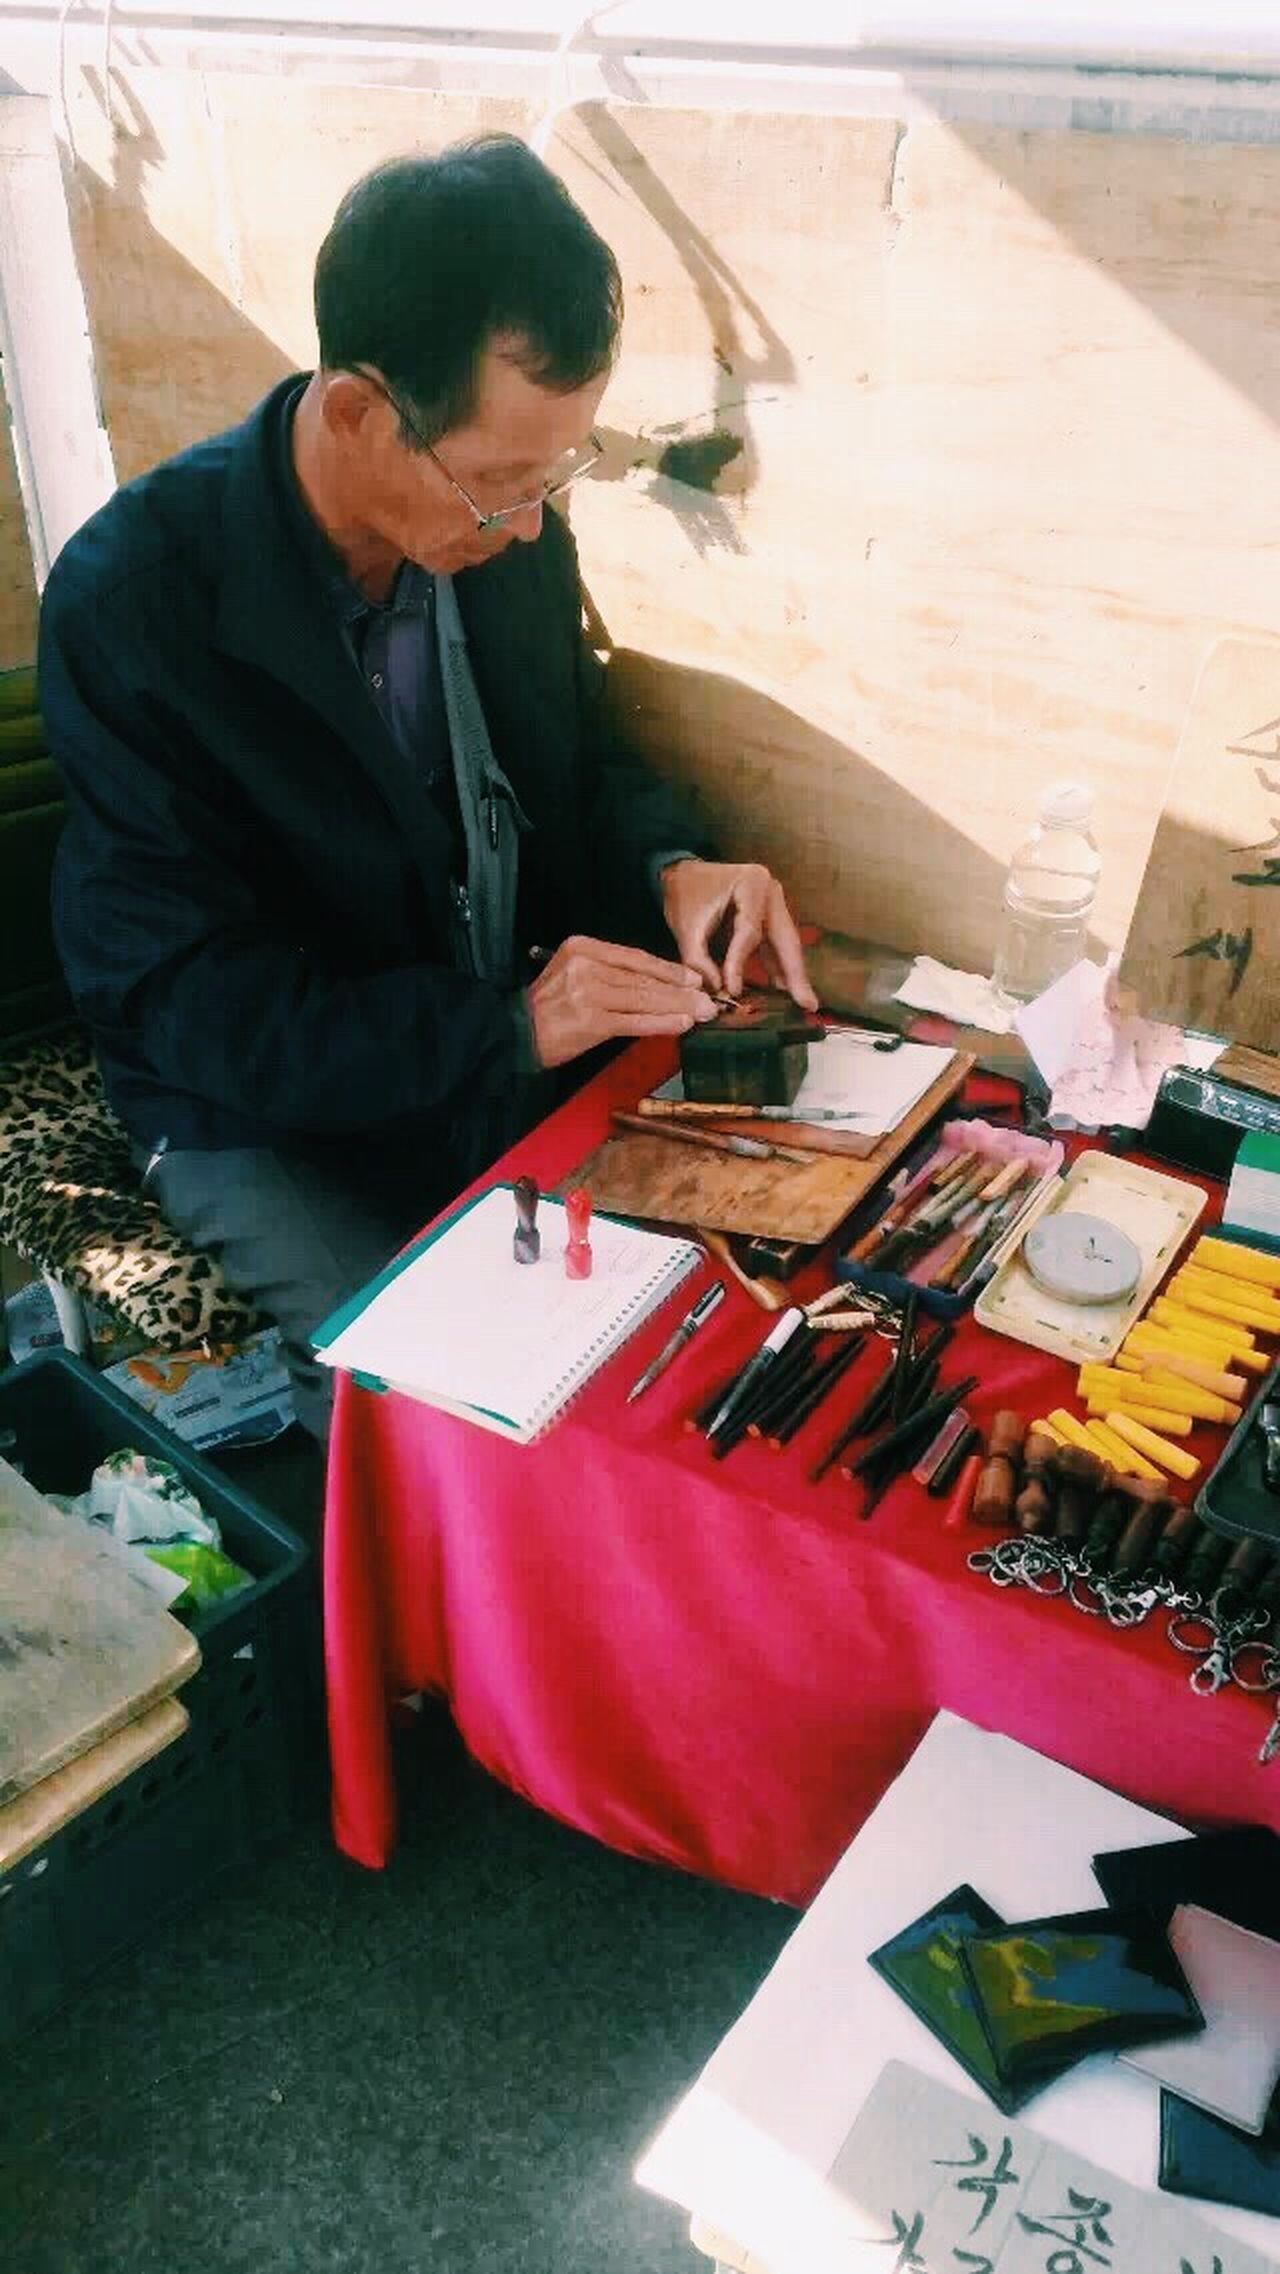 Person Sitting Handcraft Handmade Stamp Maker Making Stamps Elderly Traditional Culture Technician Worker Daily Life Artist